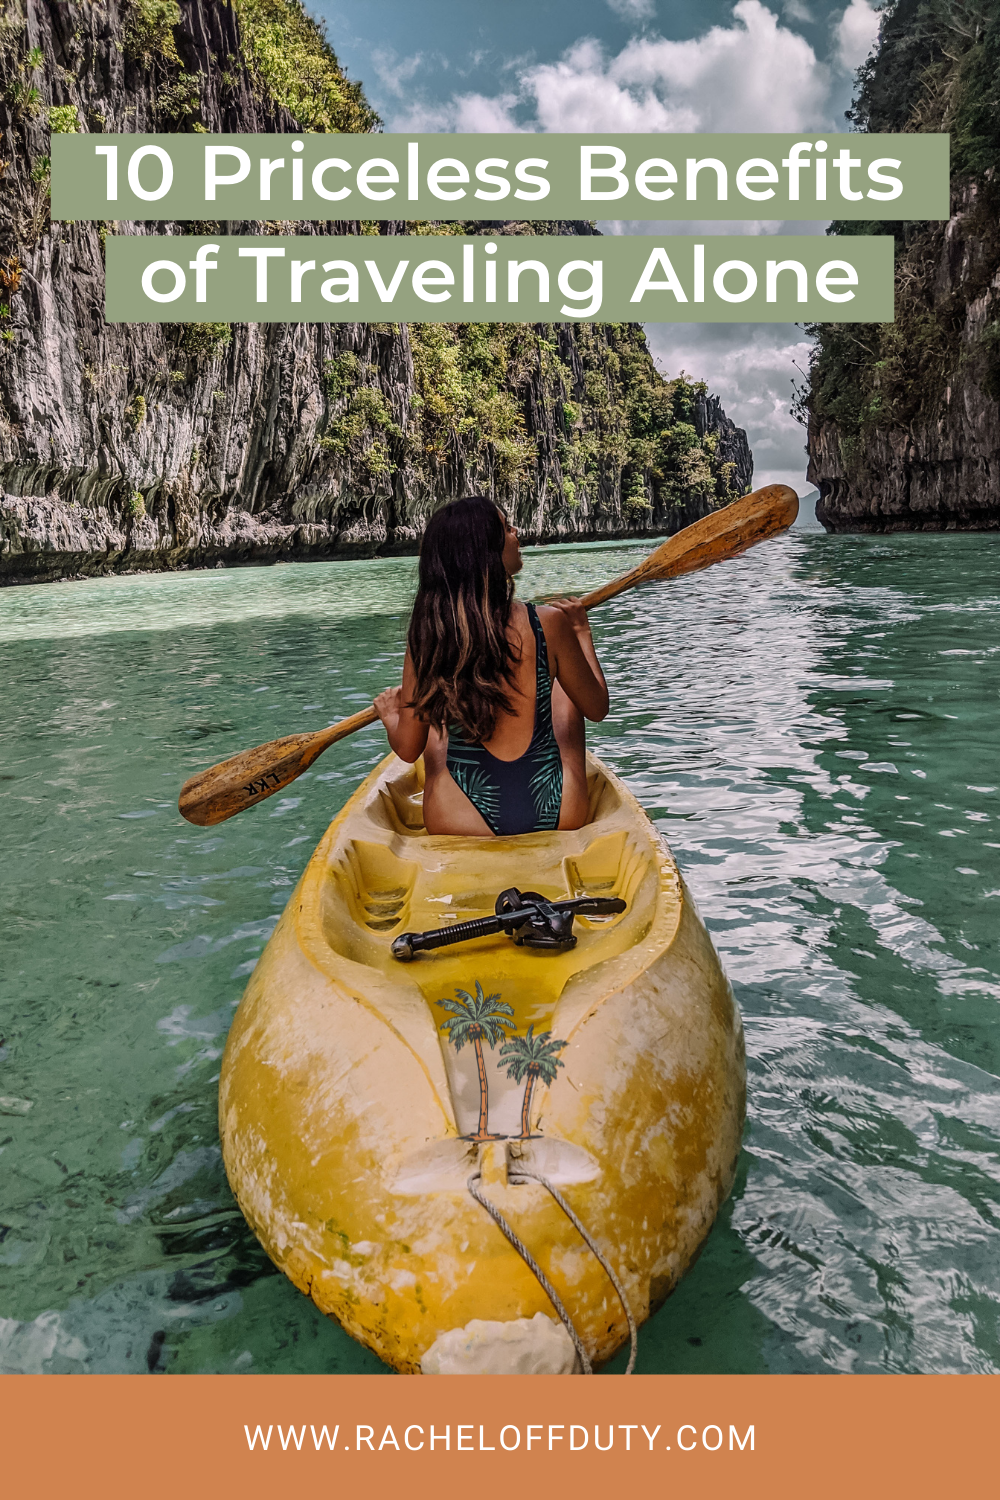 10 Priceless Benefits of Traveling Alone - Rachel Off Duty